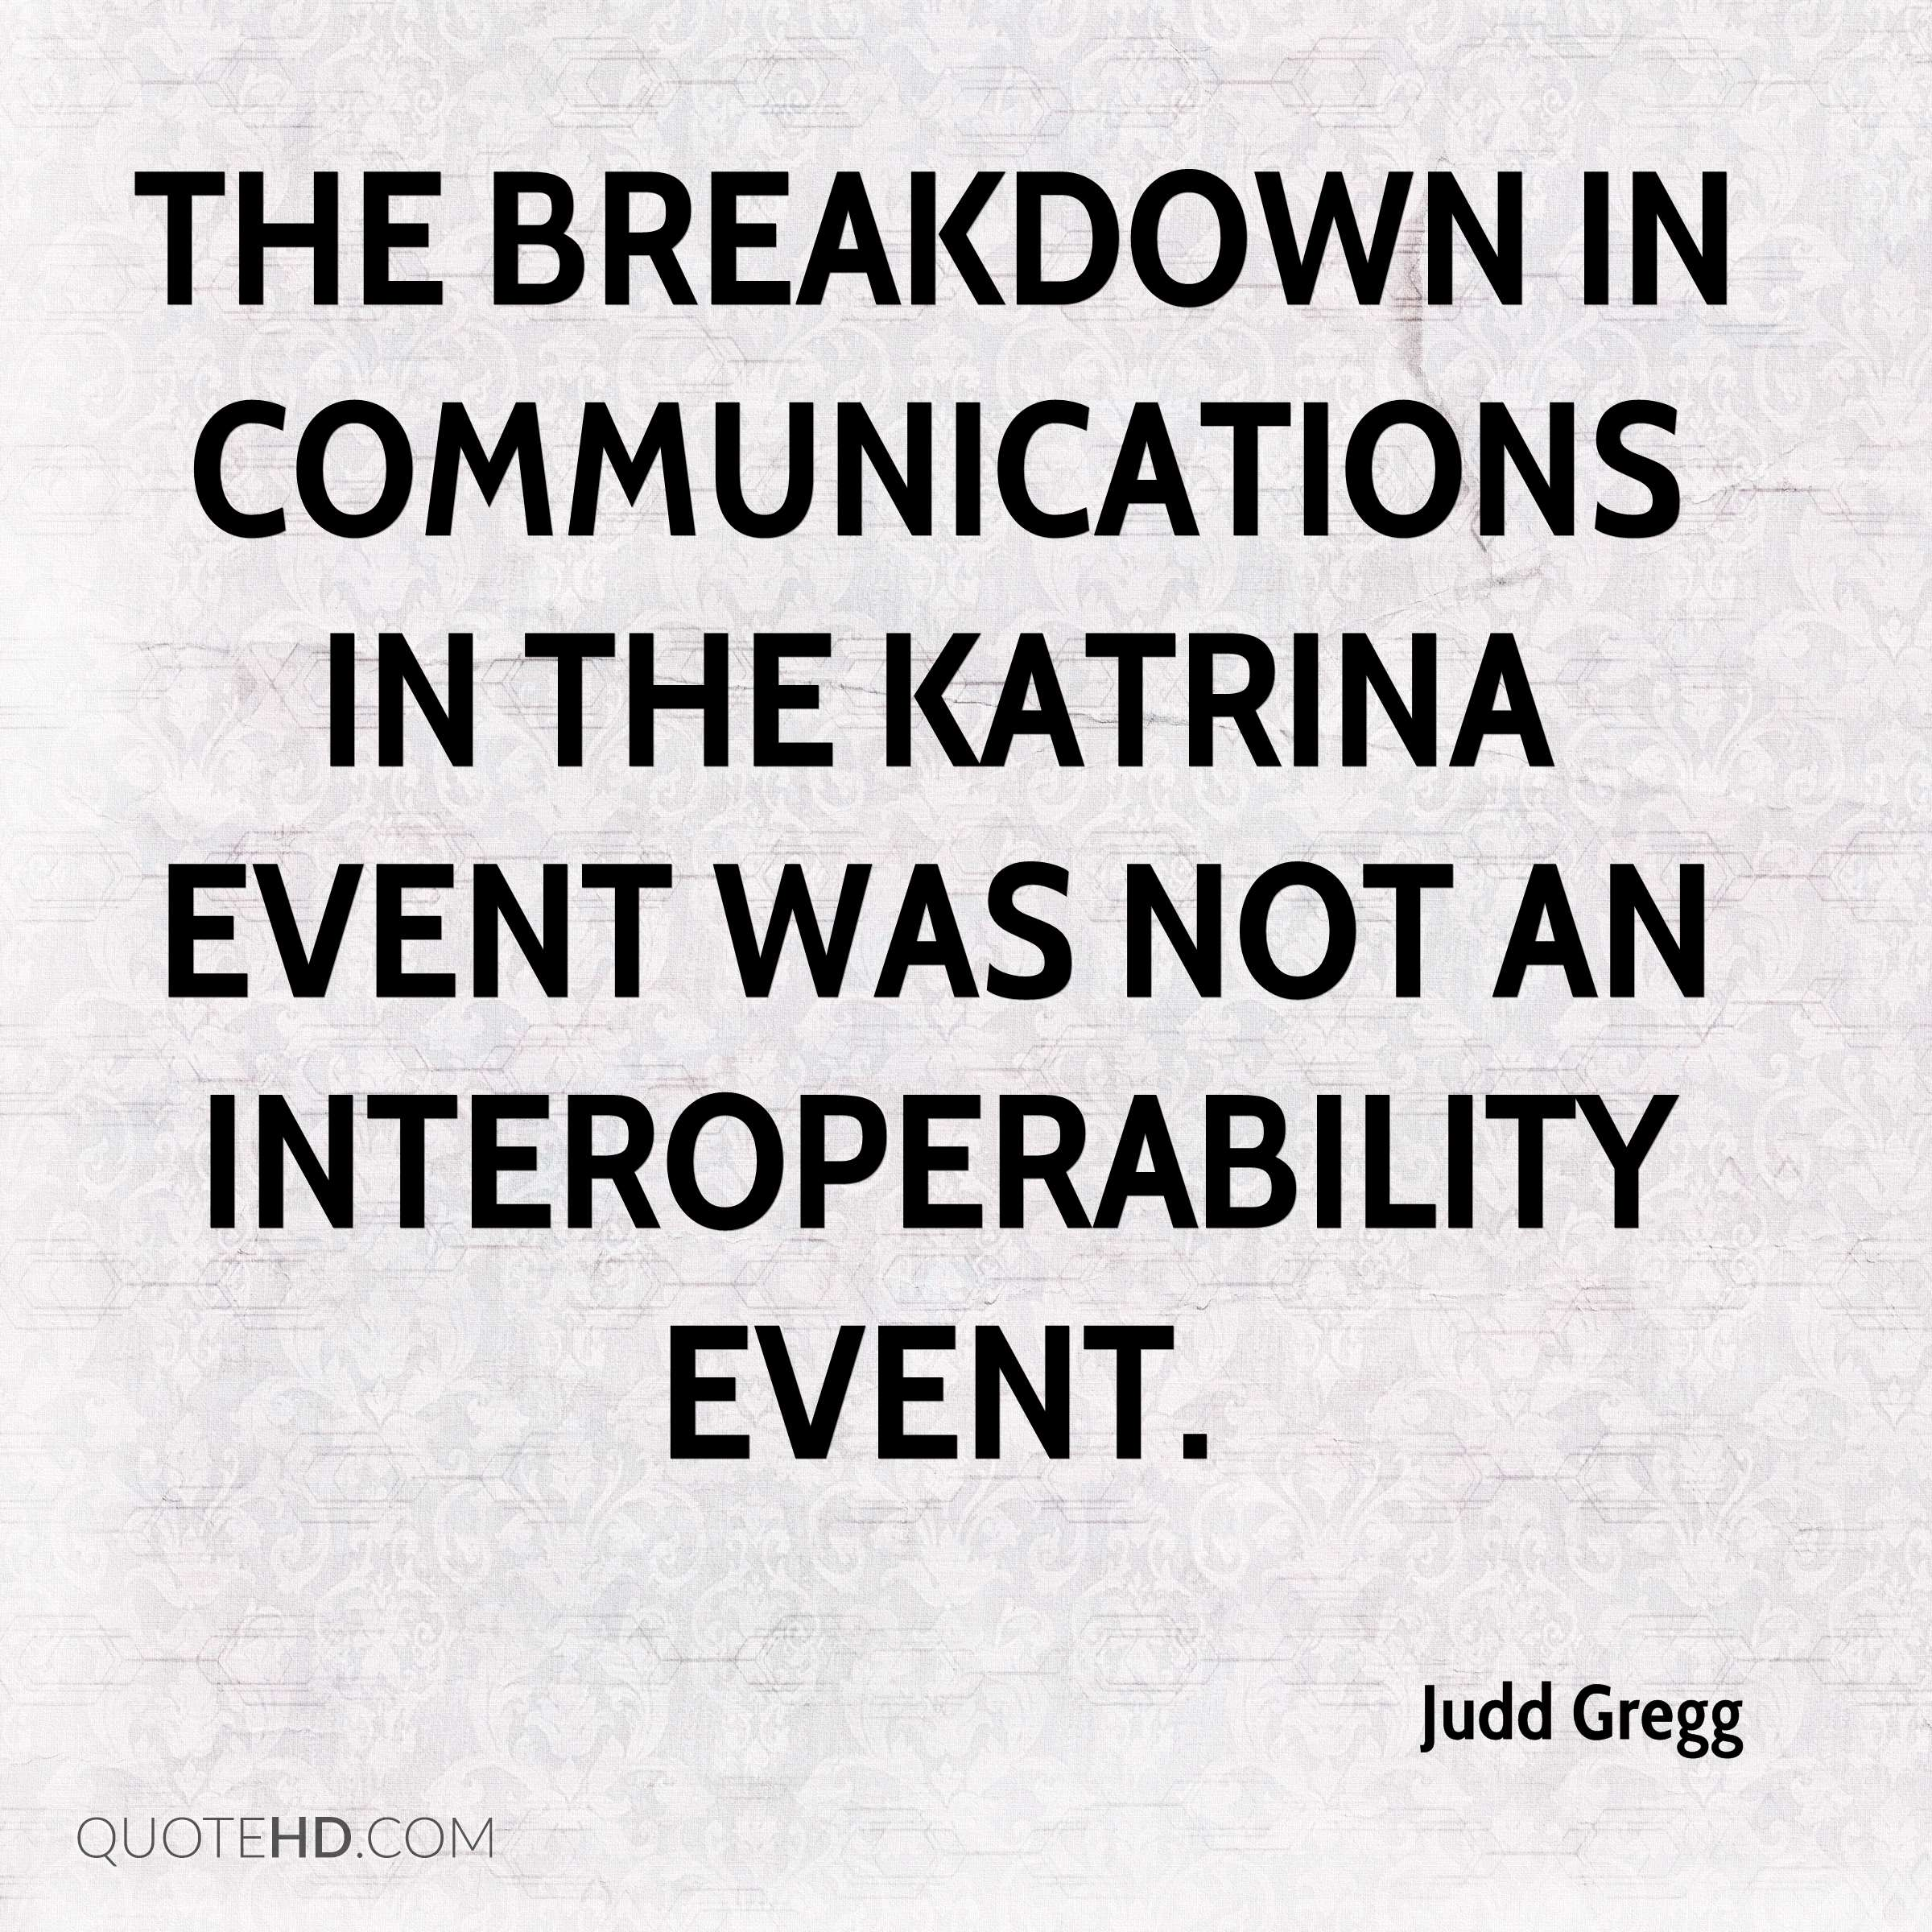 The breakdown in communications in the Katrina event was not an interoperability event.